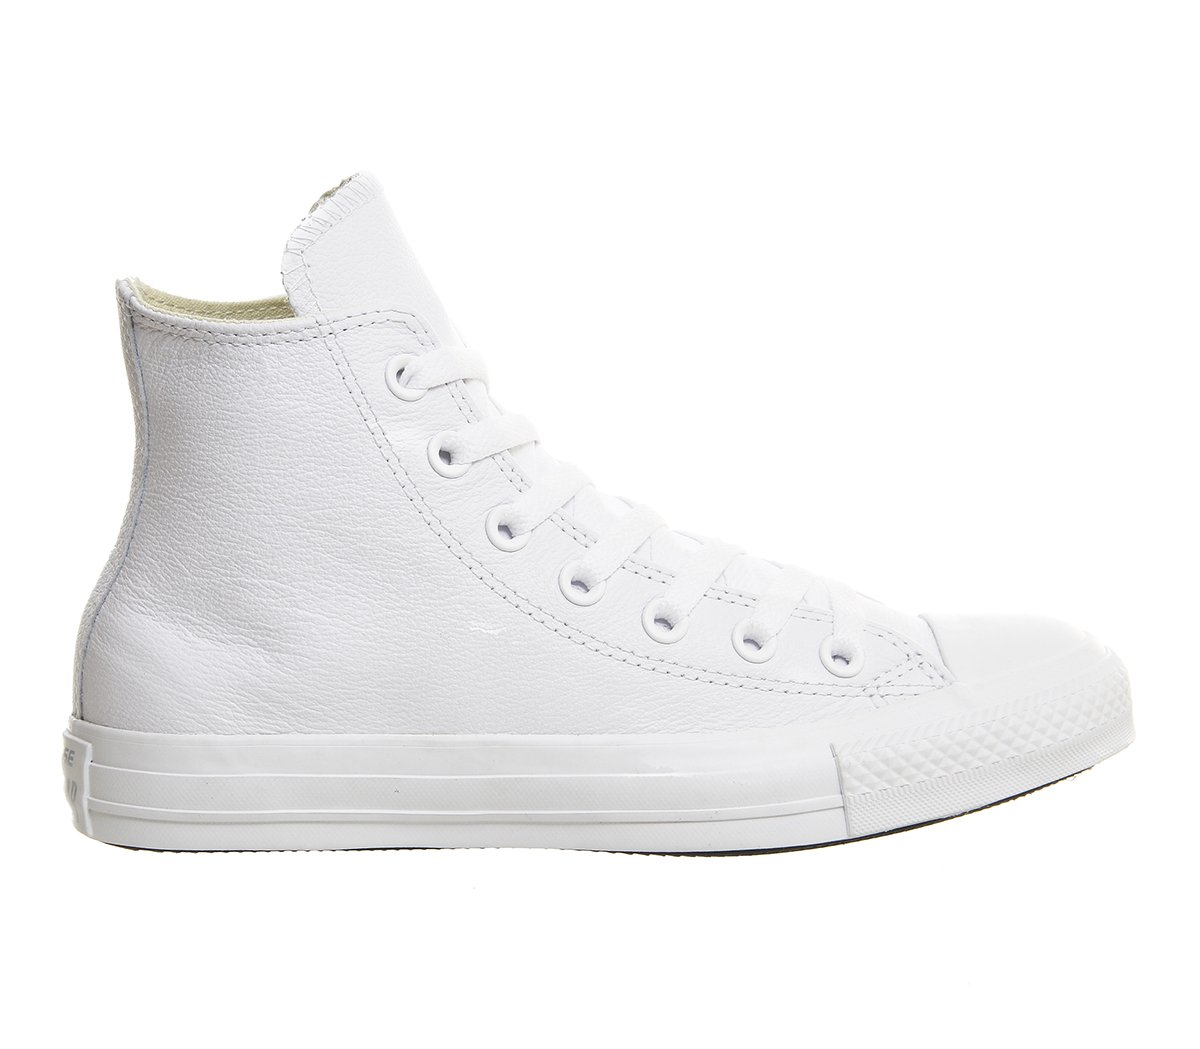 Converse Star Chuck Taylor Leather High Top, Mono White Size 7